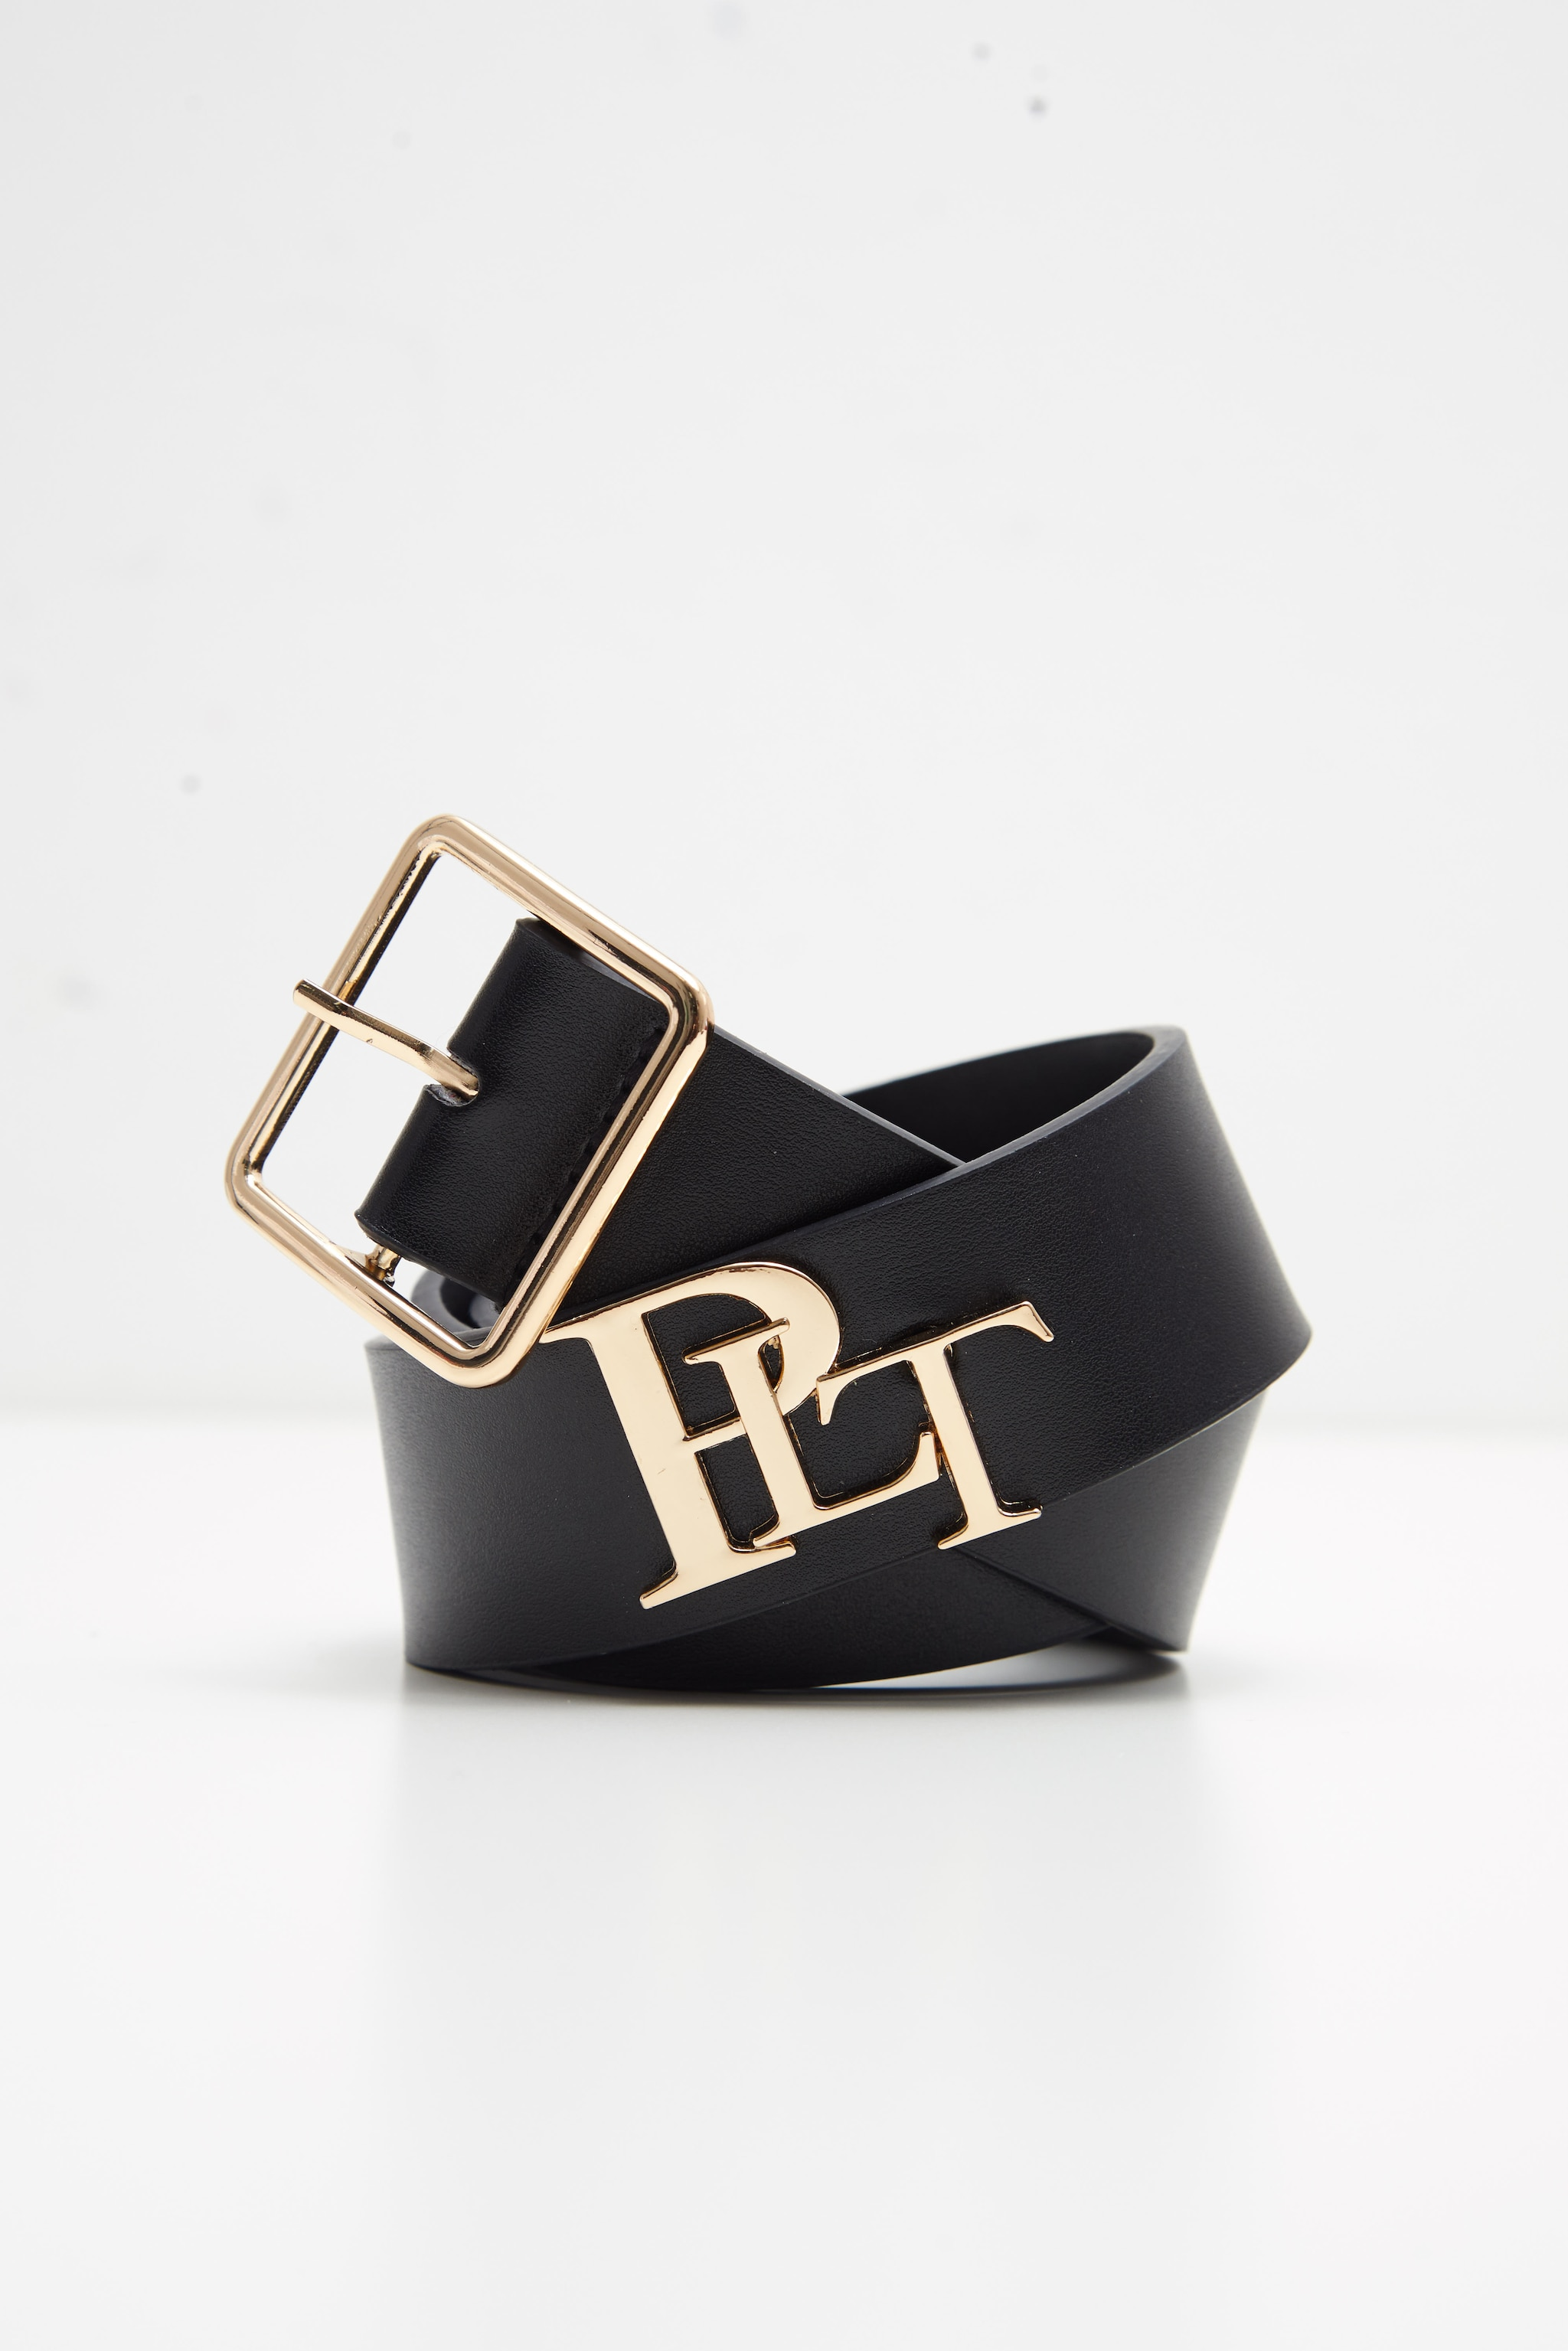 PRETTYLITTLETHING Logo Black Back Branded Buckle Belt 3